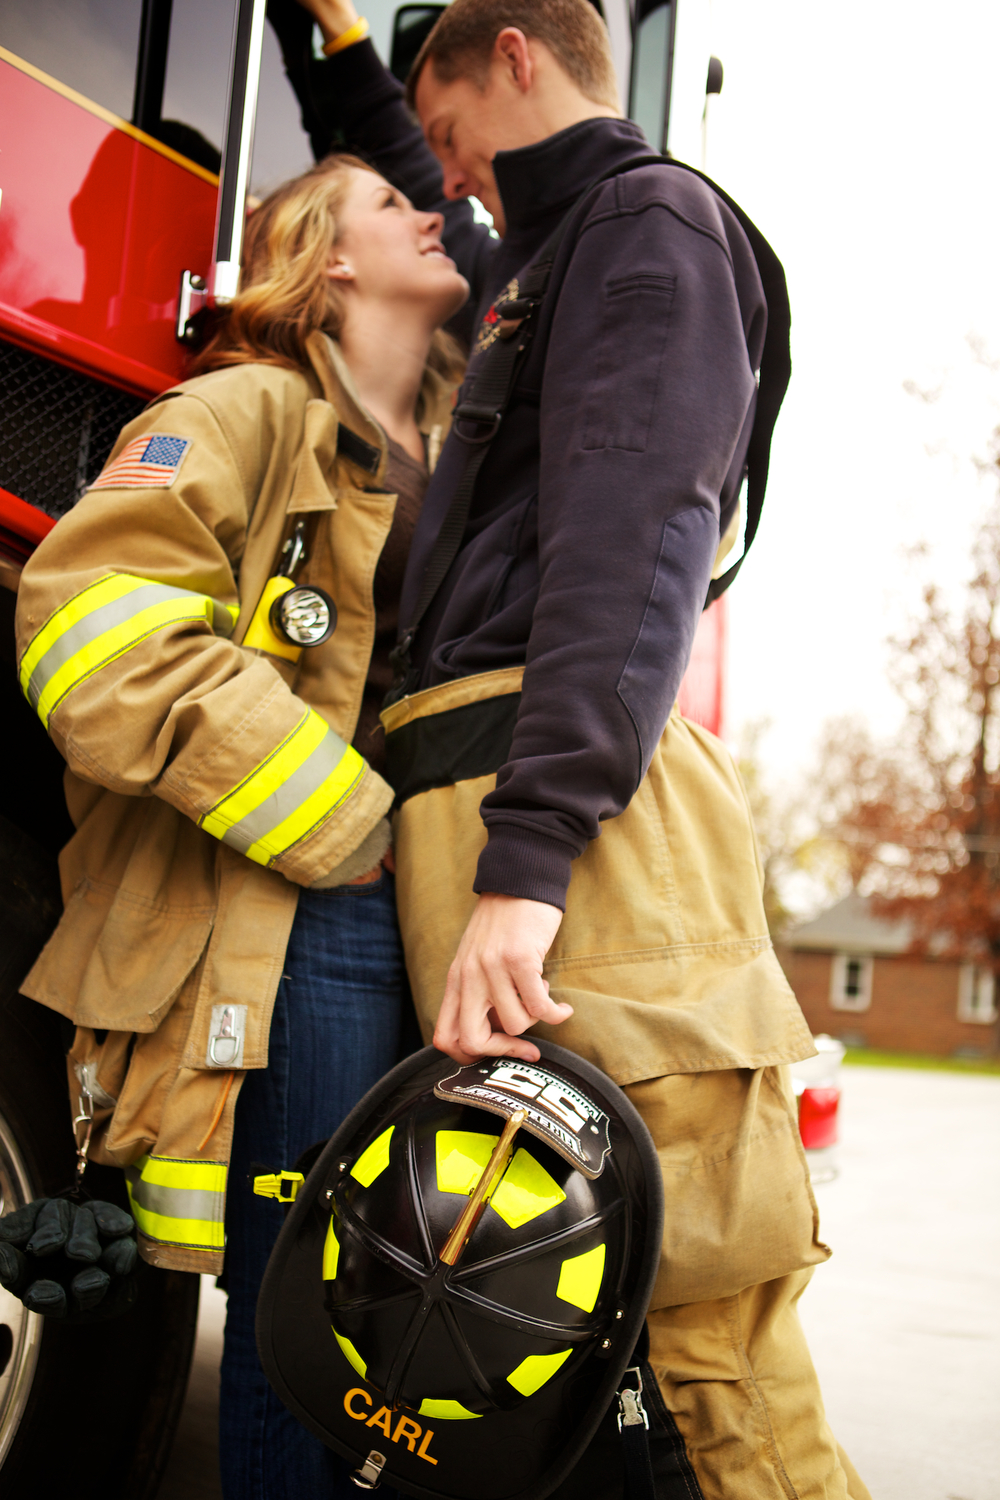 I owa Fire Station in Windsor Heights. Engagement session at the fire station with a fire fighter.